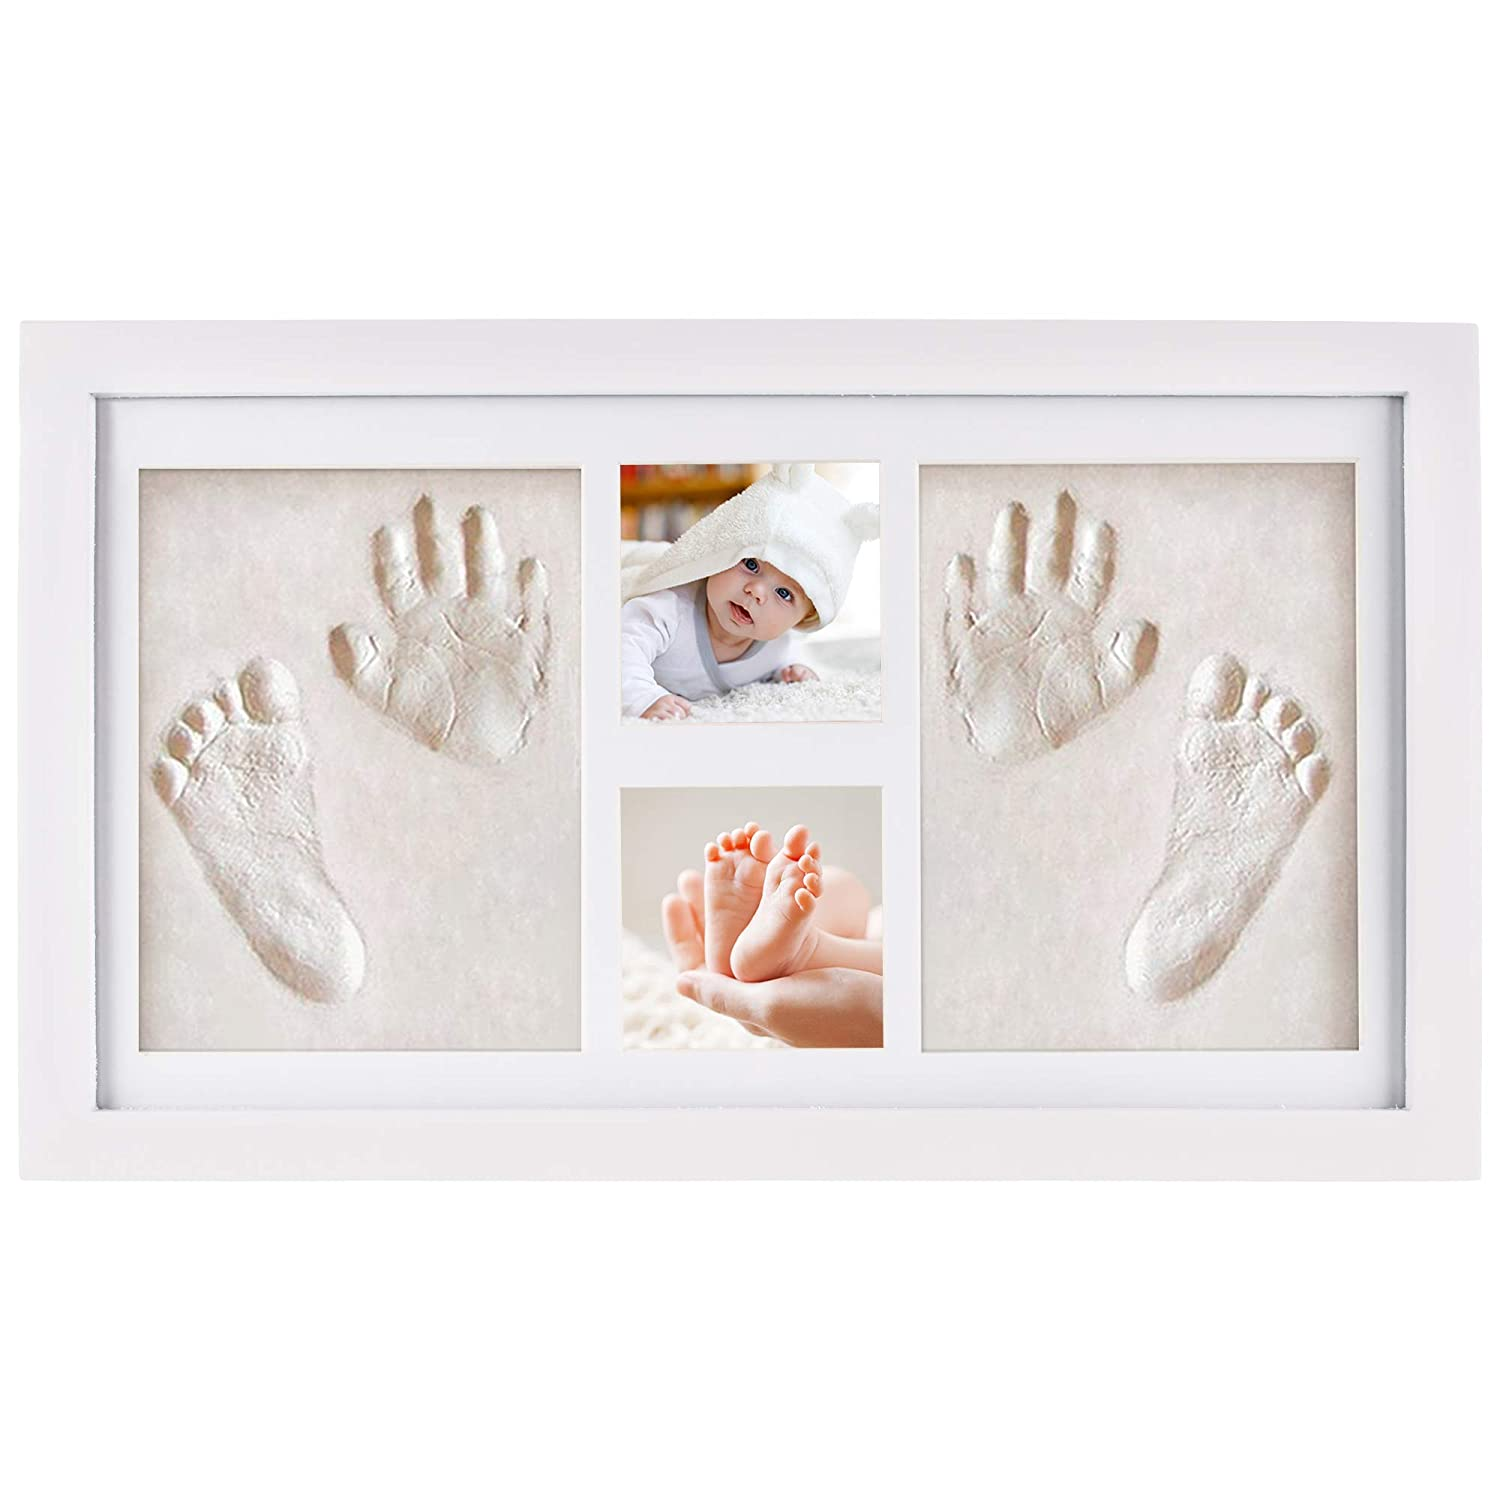 NIMAXI Baby Hand and Footprint picture frame kit, Size 43x25cm, Color White, The Perfect New Born Baby Gift FuTrade